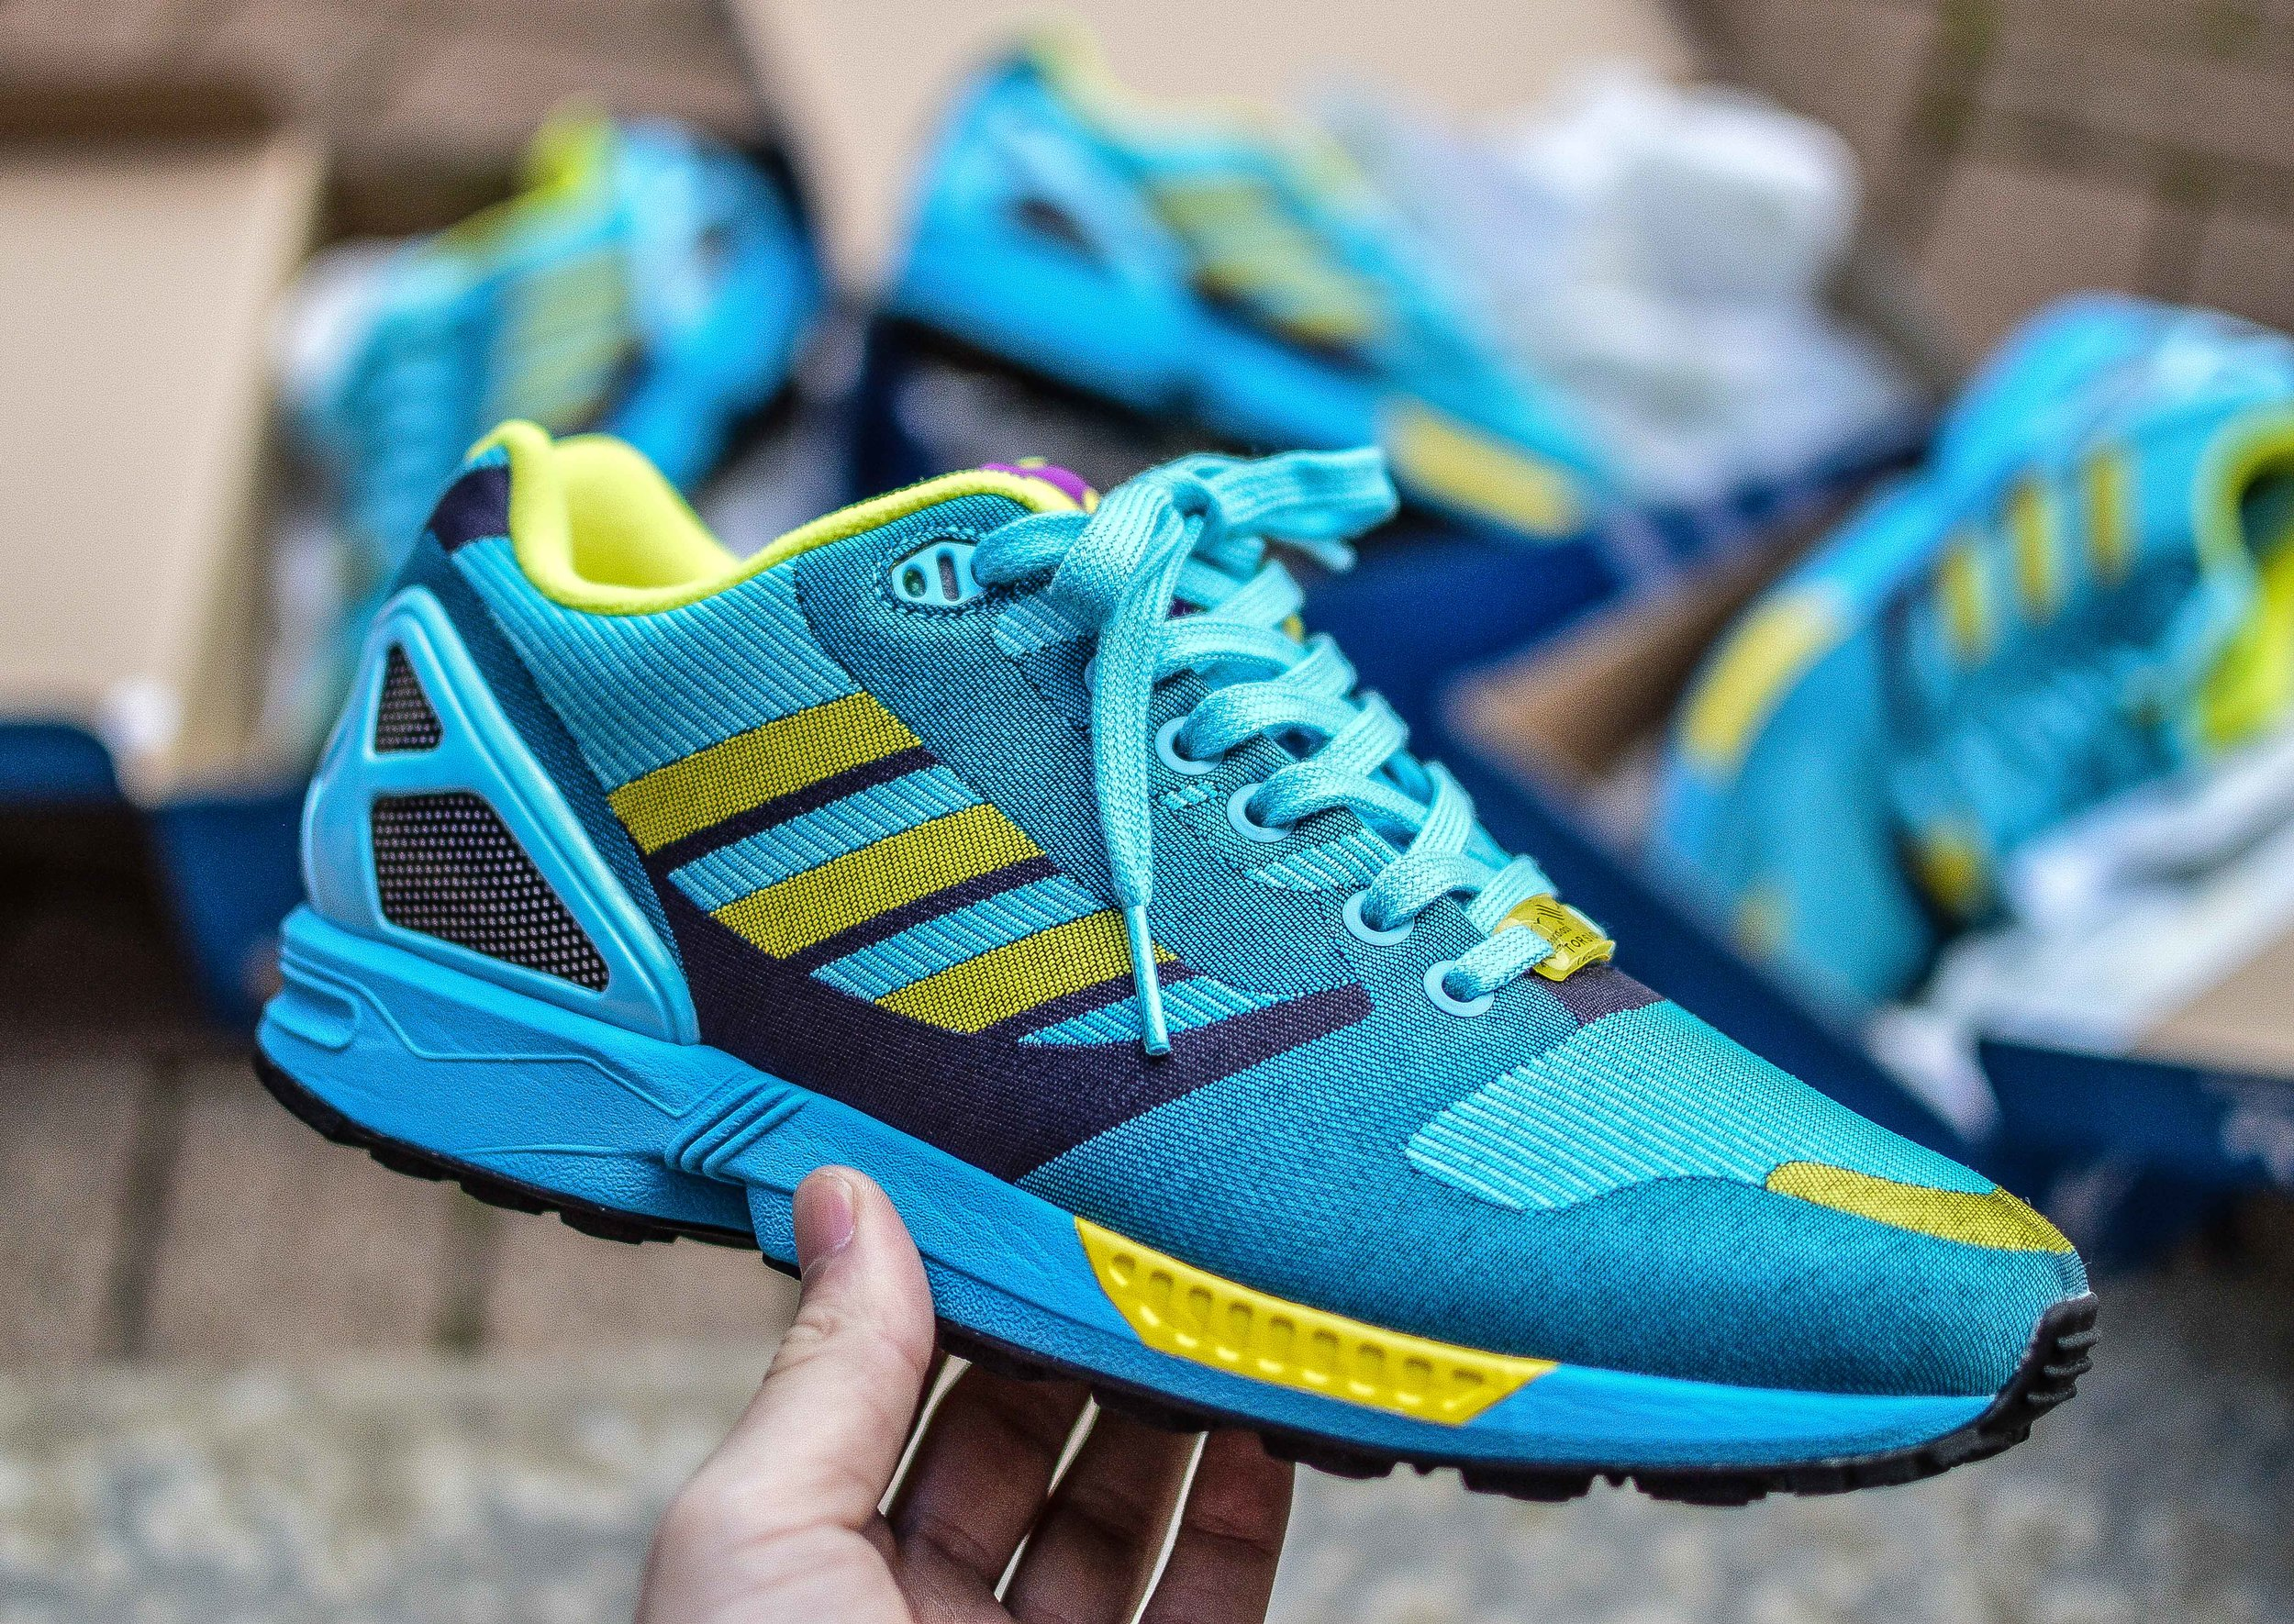 a442690aa The whole  Flux  technology from Adidas has been the talk of the town for a  good while now